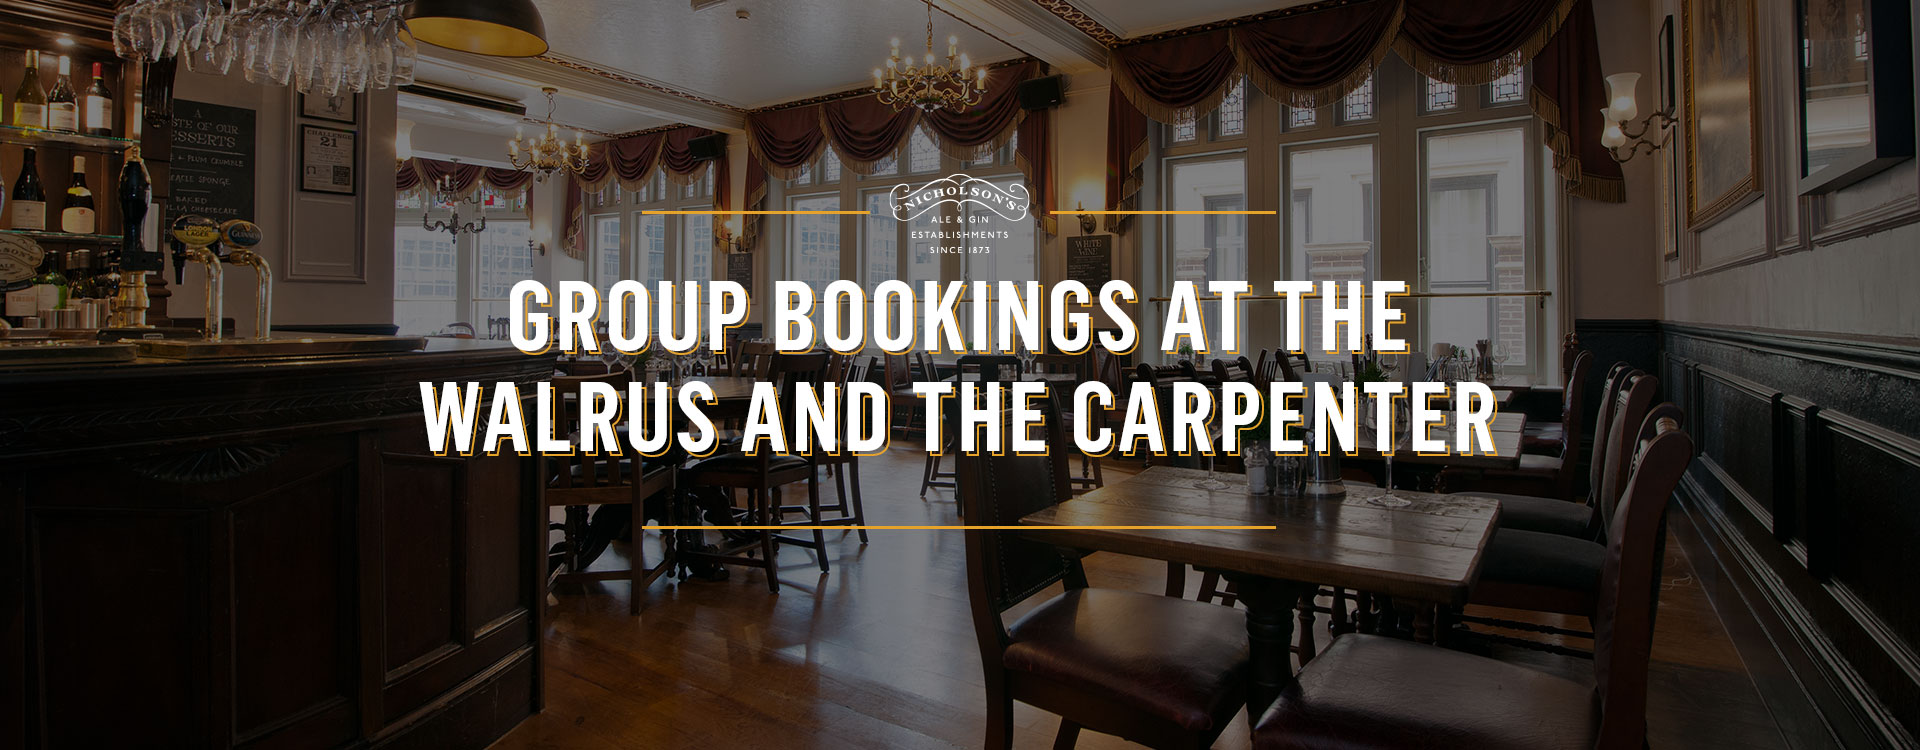 Group Bookings at The Walrus and The Carpenter